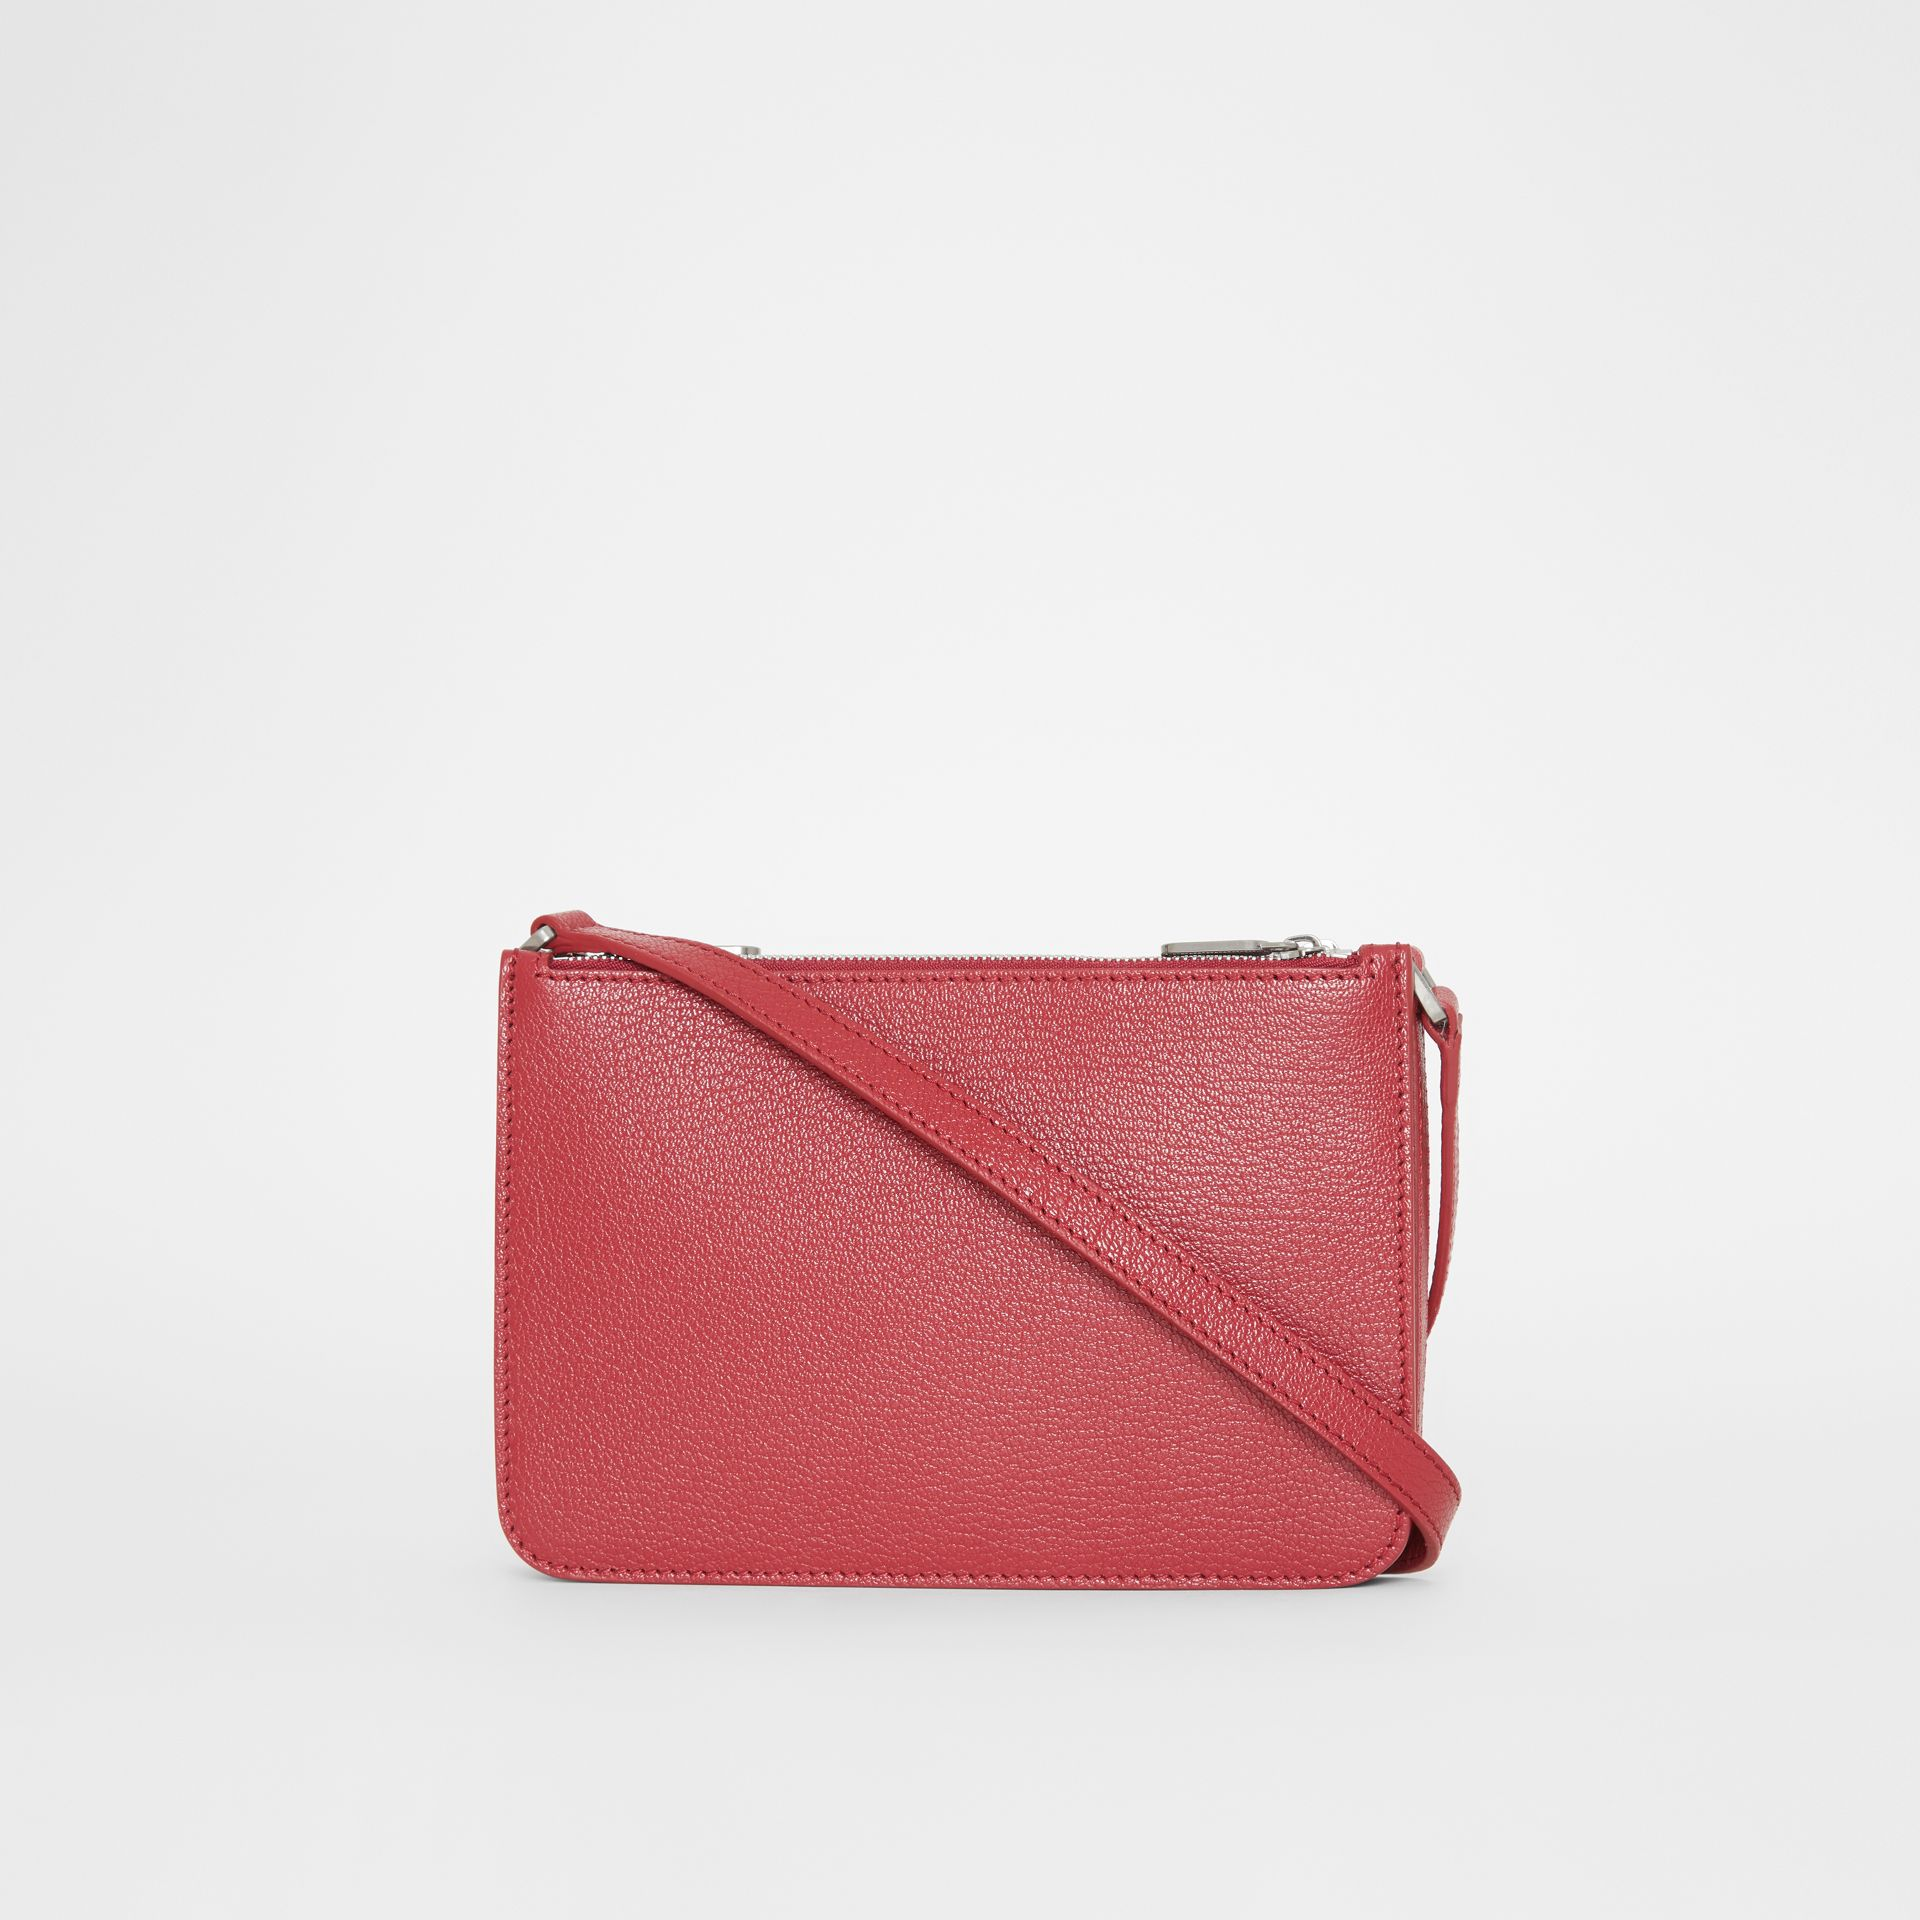 Triple Zip Grainy Leather Crossbody Bag in Crimson - Women | Burberry - gallery image 7